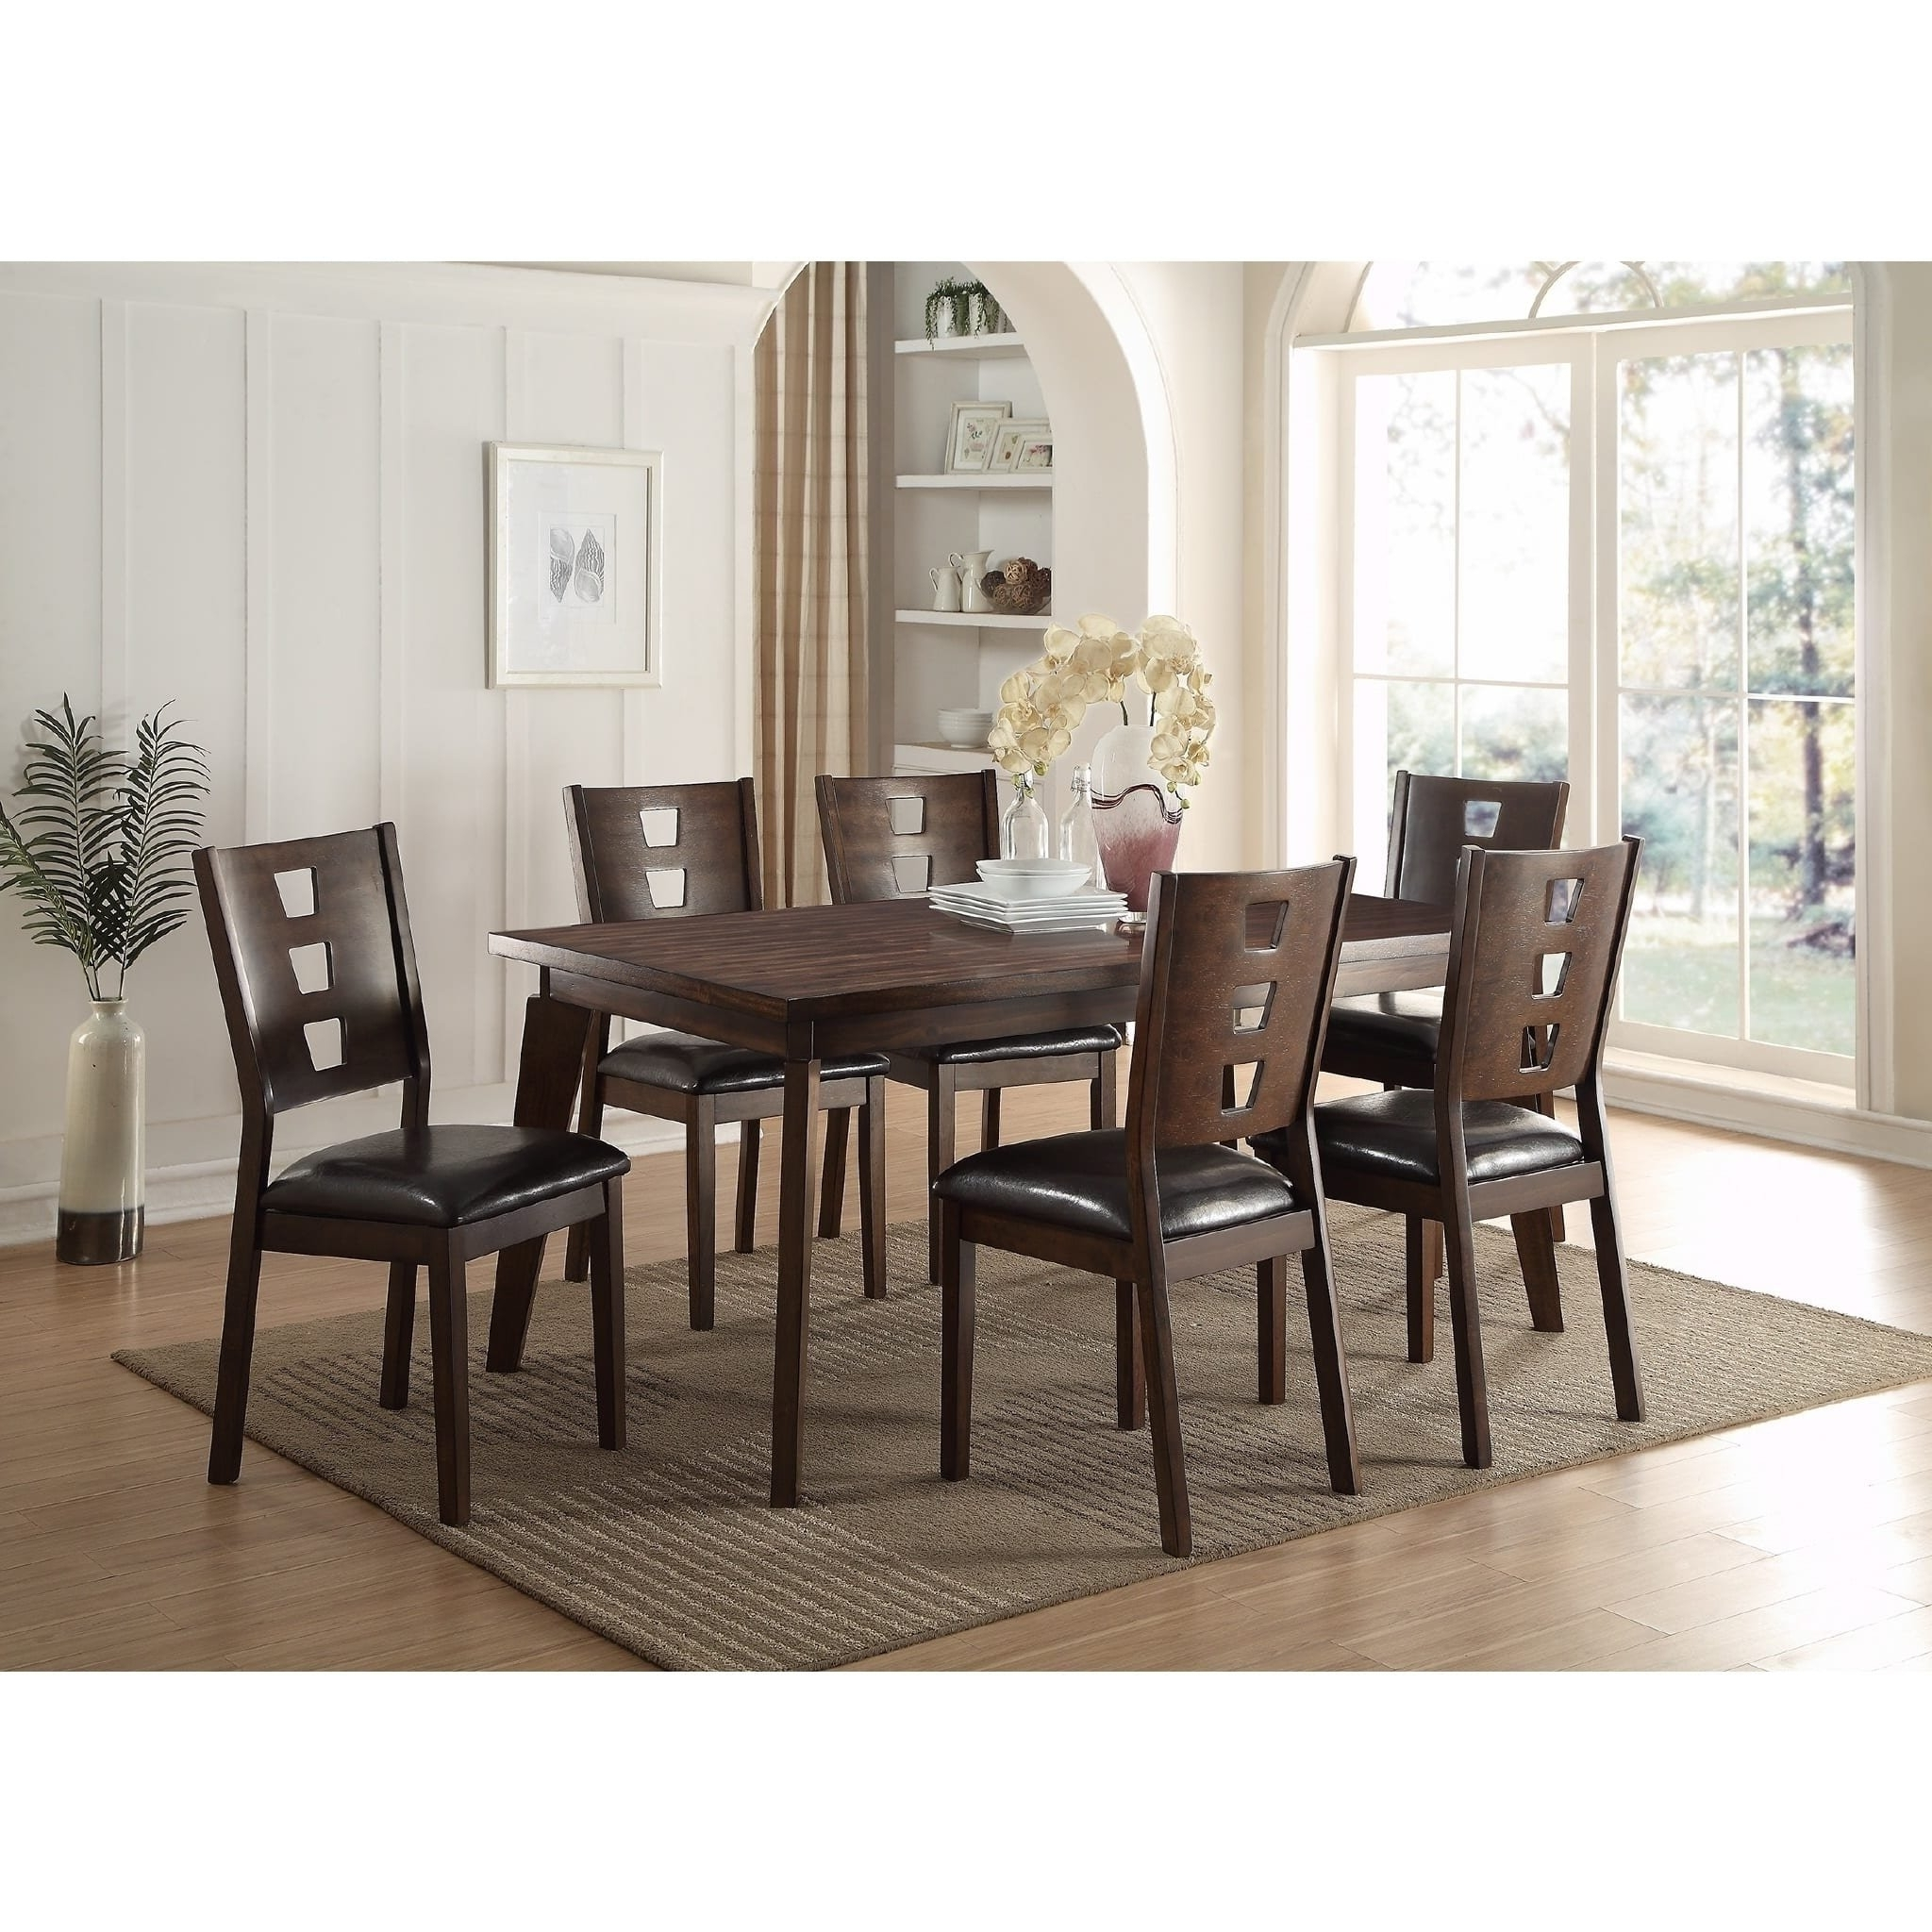 Most Current Shop Joey 7 Piece Dining Set – Free Shipping Today – Overstock Pertaining To Caira Black 7 Piece Dining Sets With Upholstered Side Chairs (View 9 of 25)